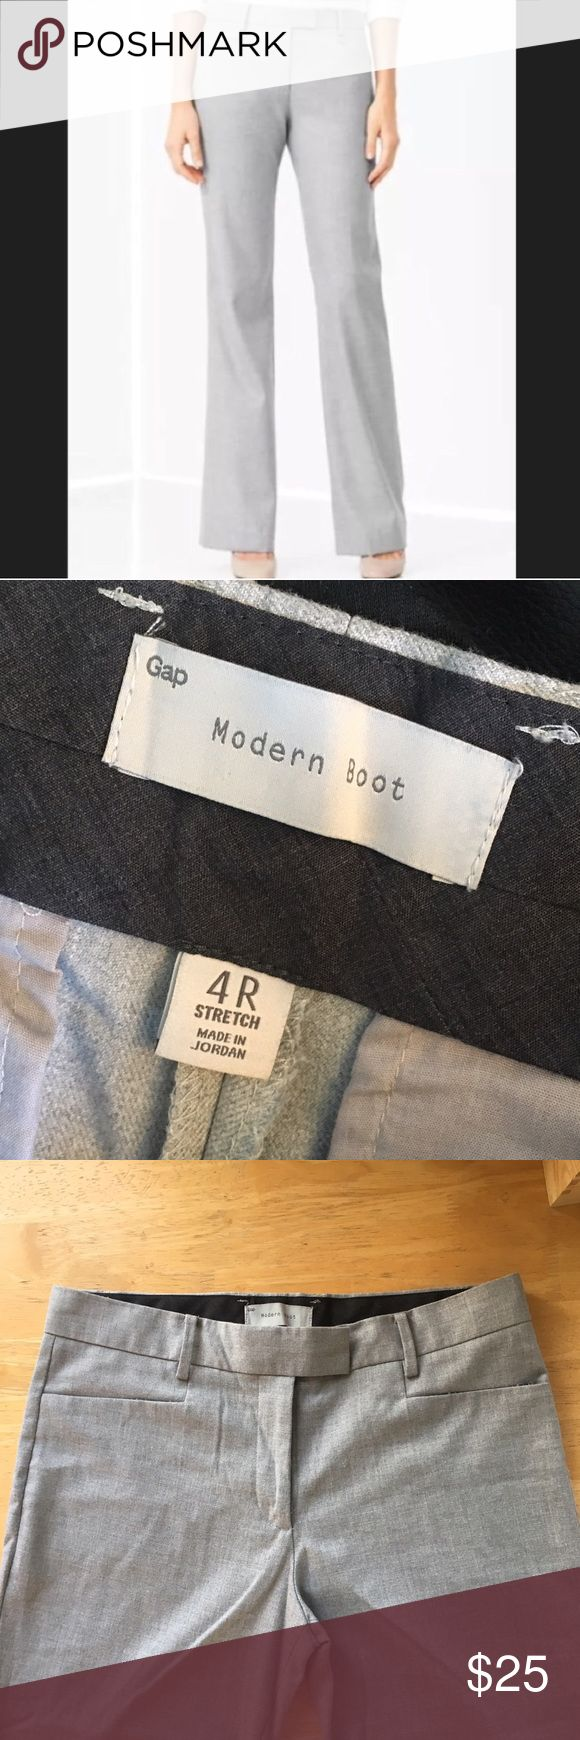 Gap Grey Dress Pants Grey tweed like Dress Pants. In great condition.Only worn a few times. Stitching on pockets still intact. GAP Pants Trousers